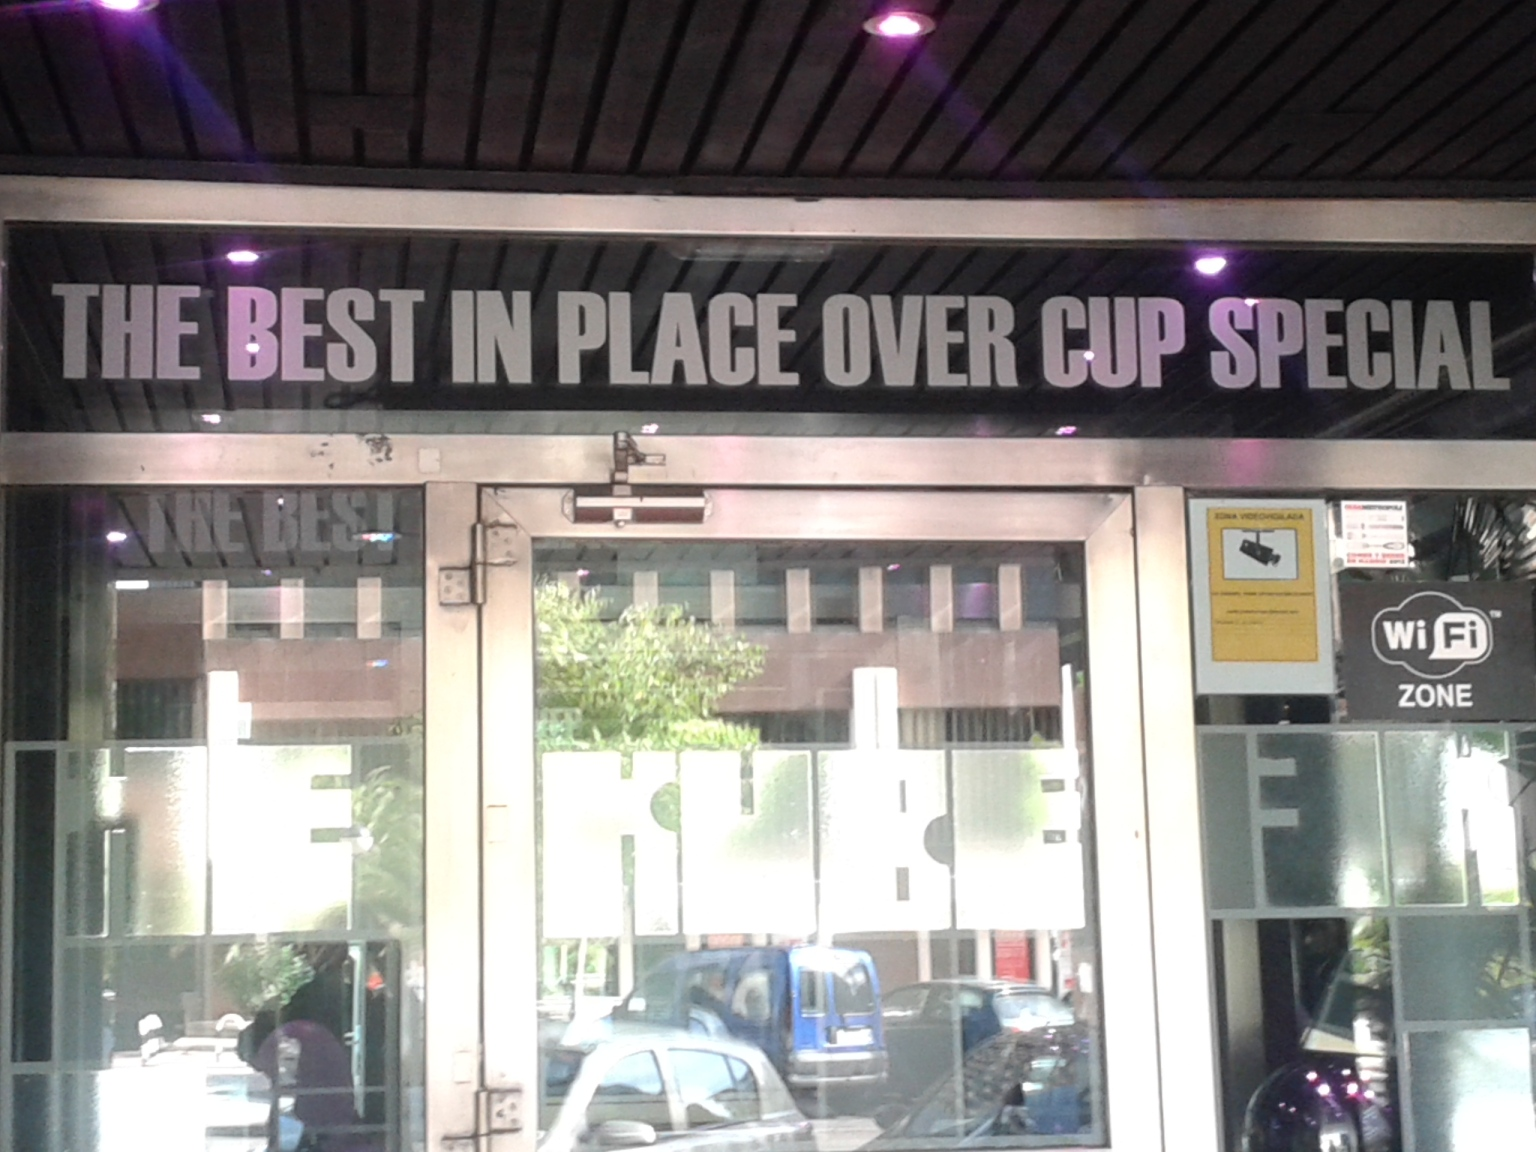 Translation Disasters: The Best in Place Over Cup Special